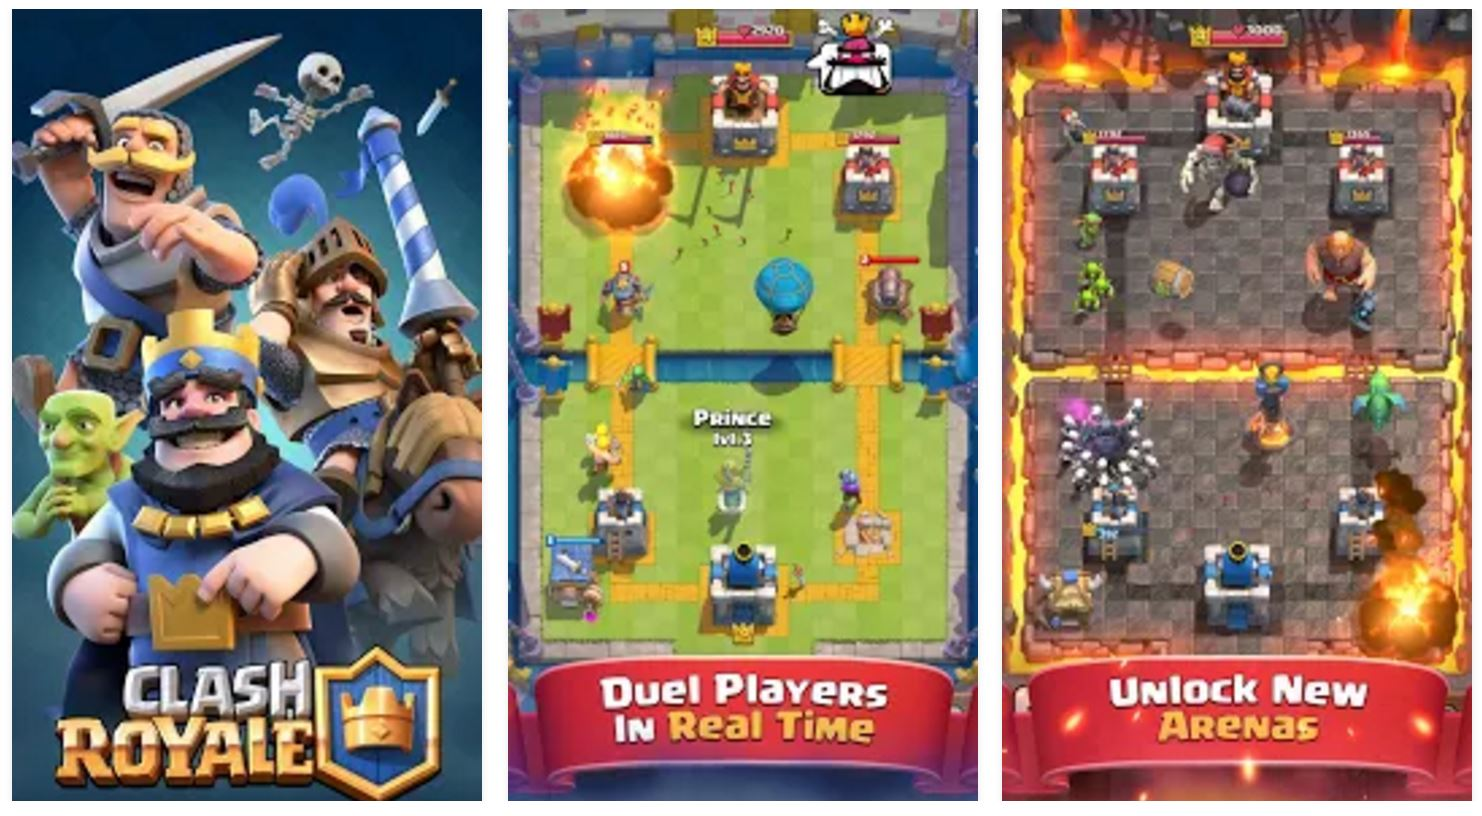 Clash Royale is already the top-grossing iOS game in the